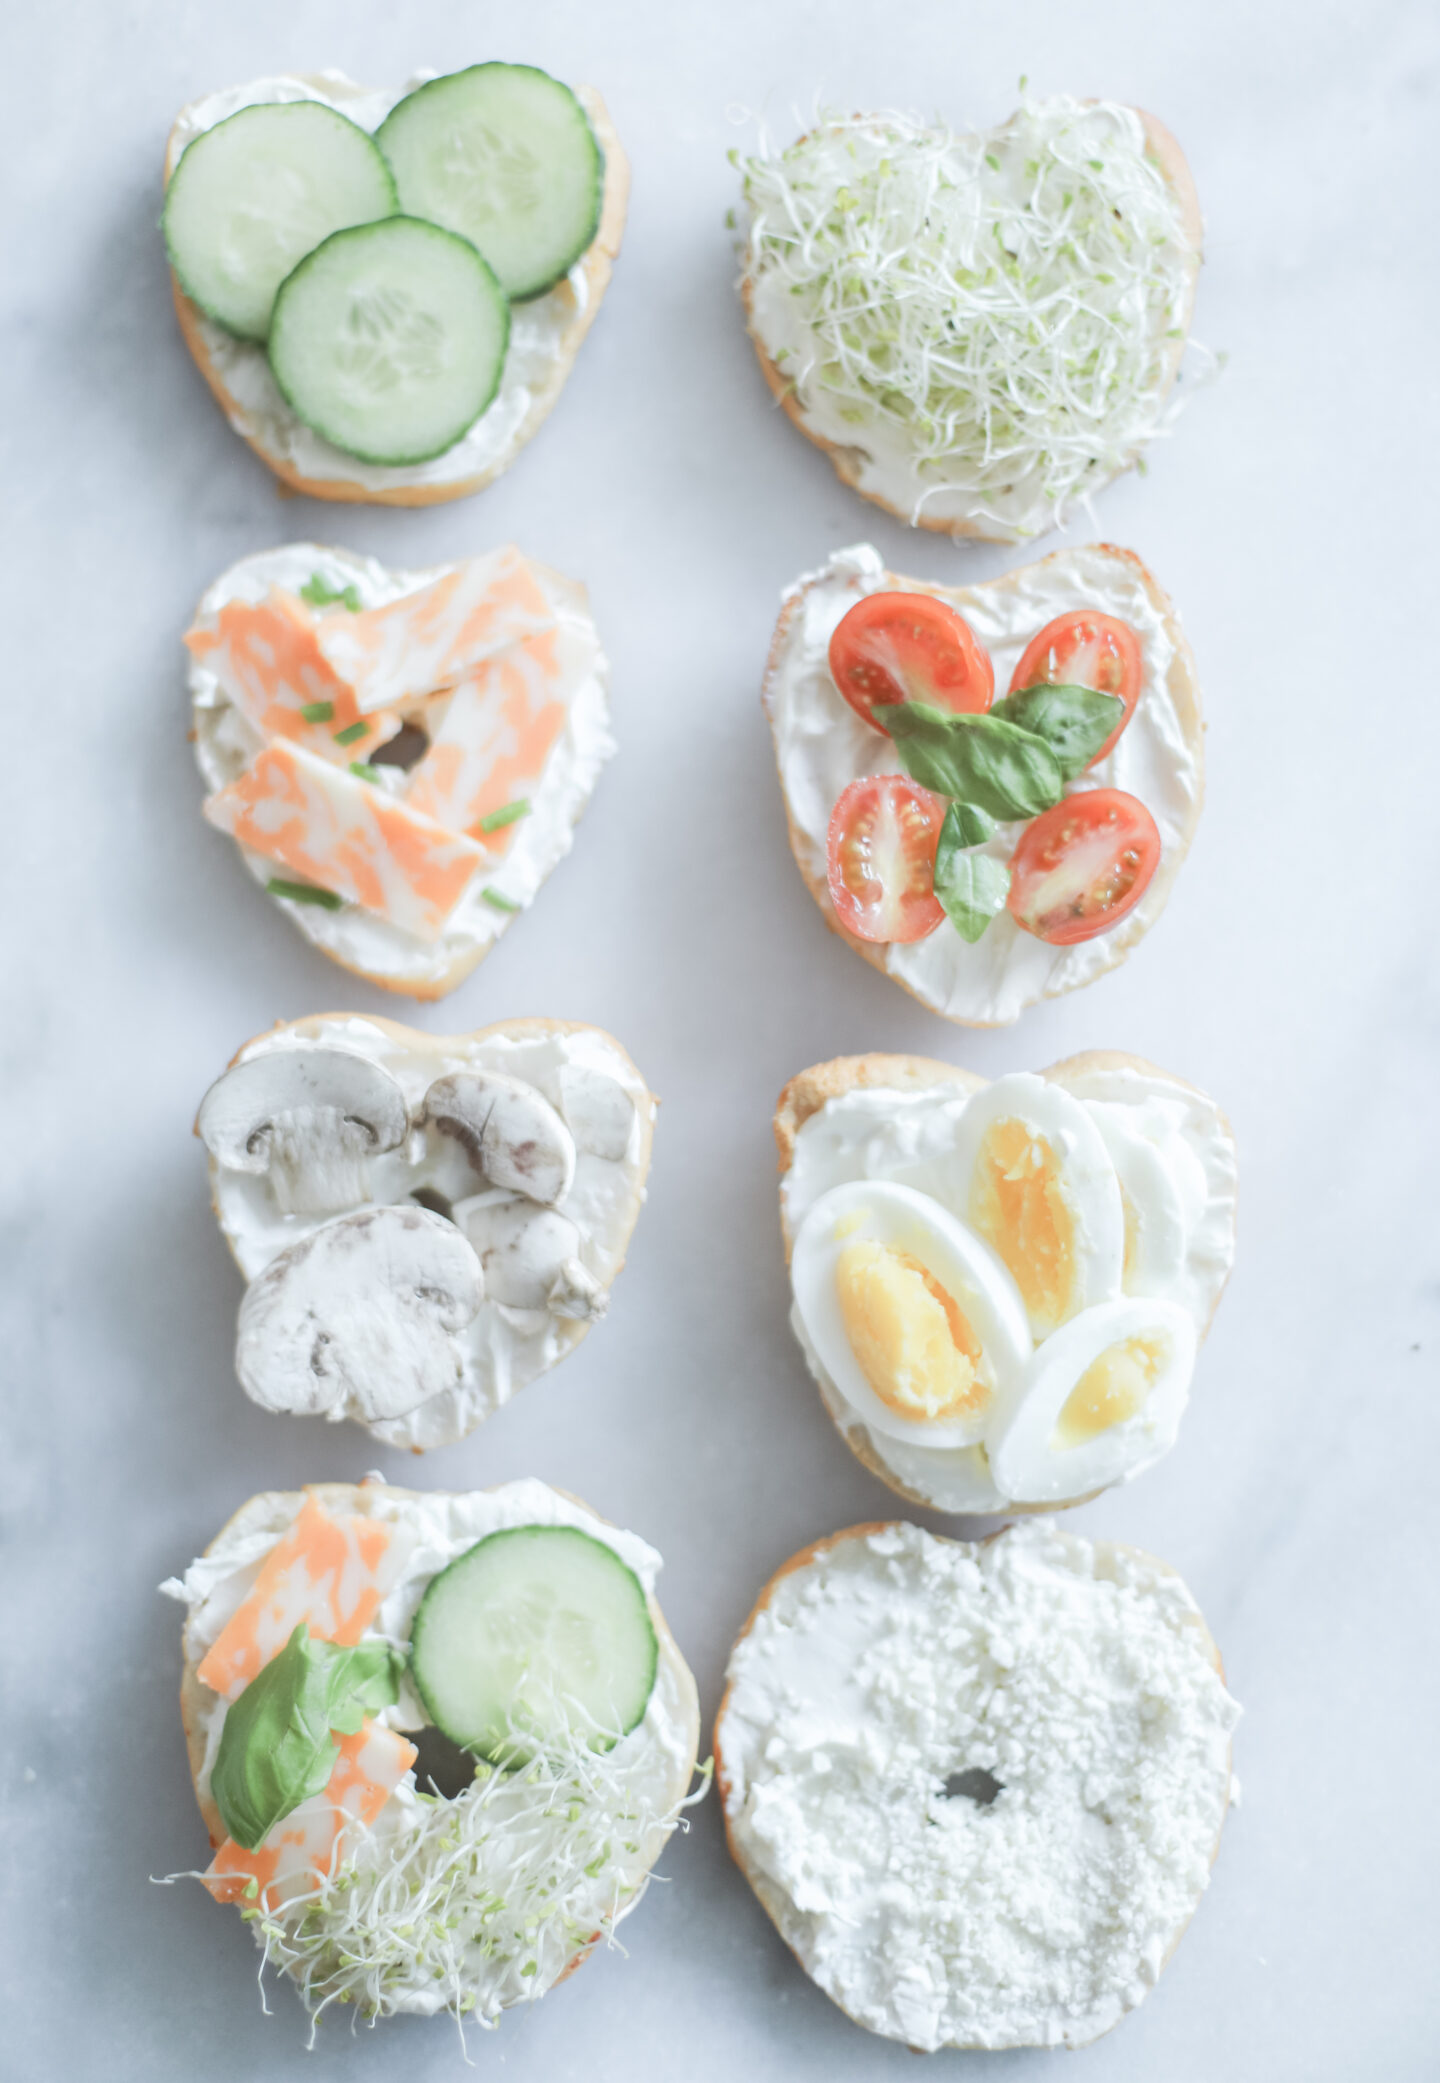 gluten free lactose free bagel recipe with toppings